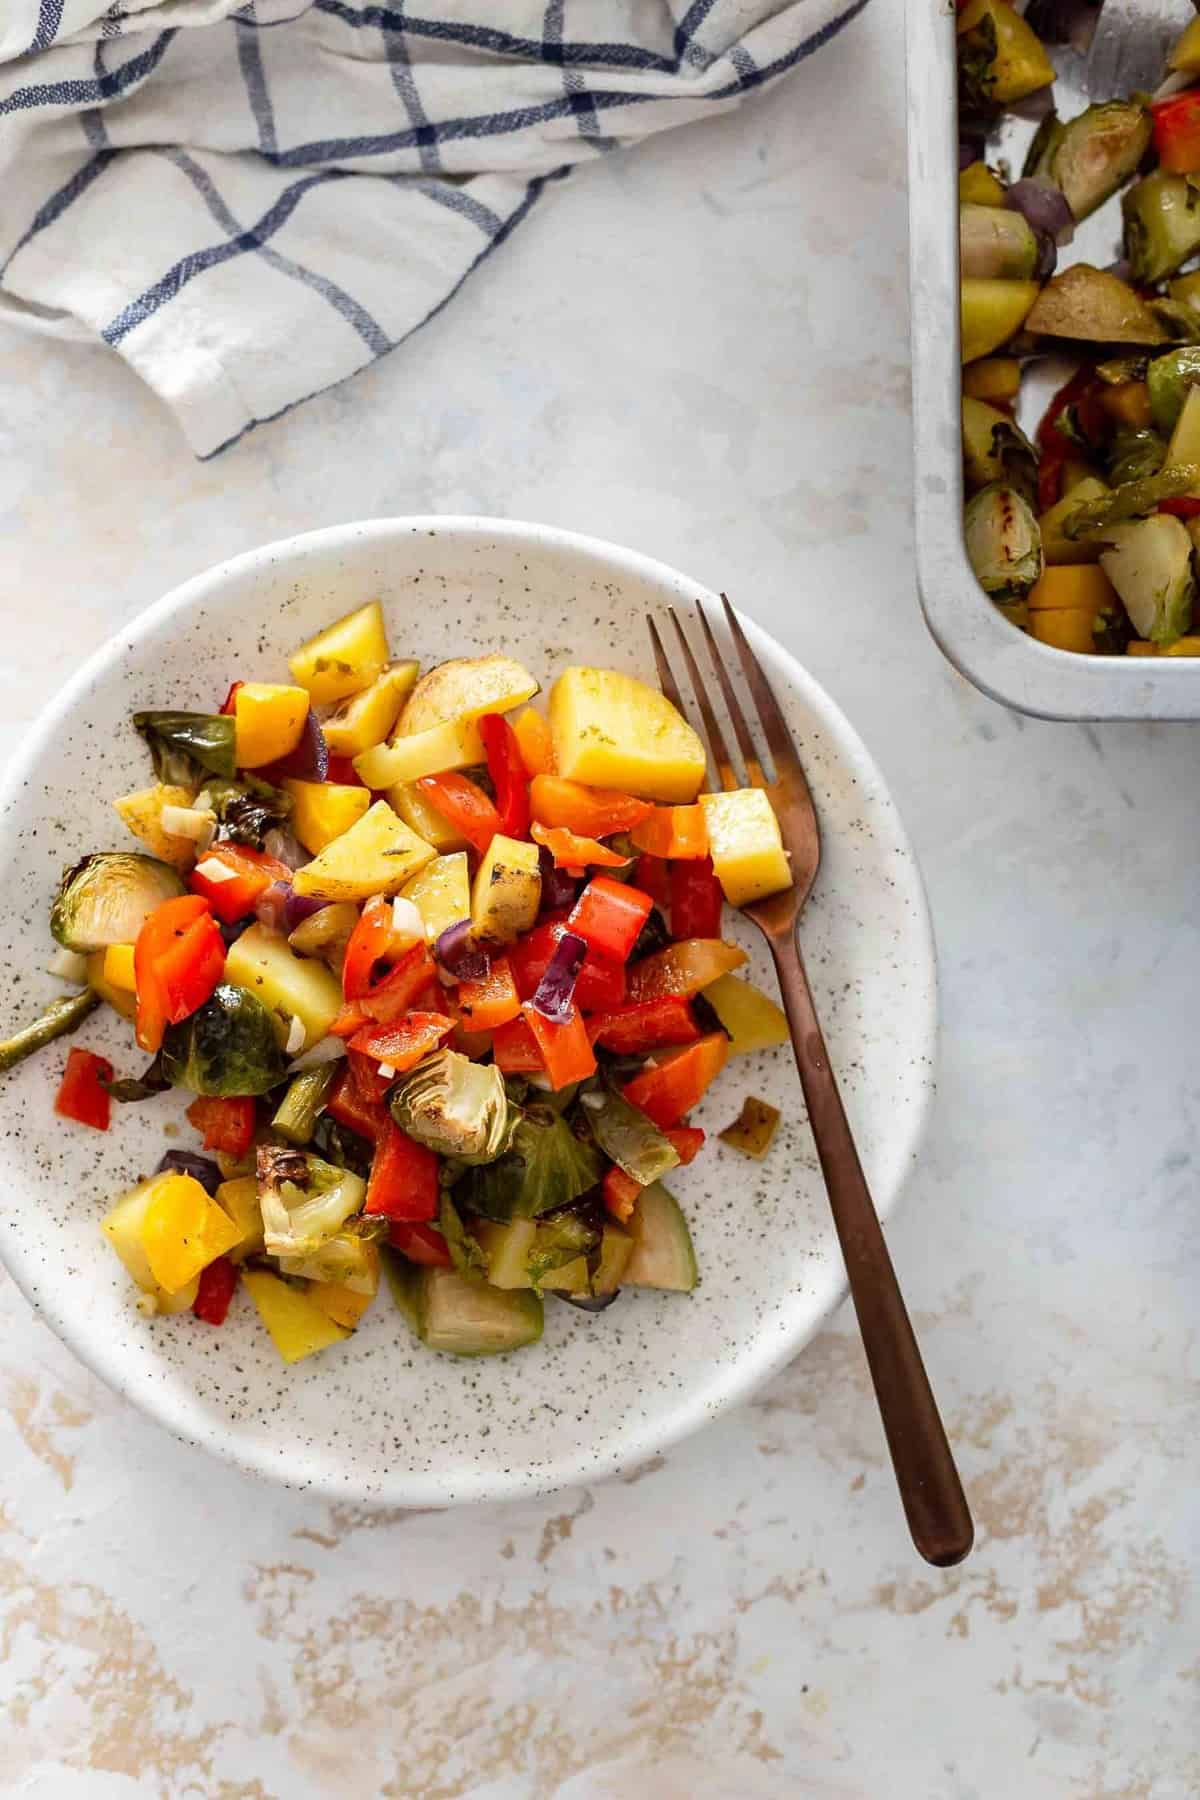 a plate full of baked vegetable mix